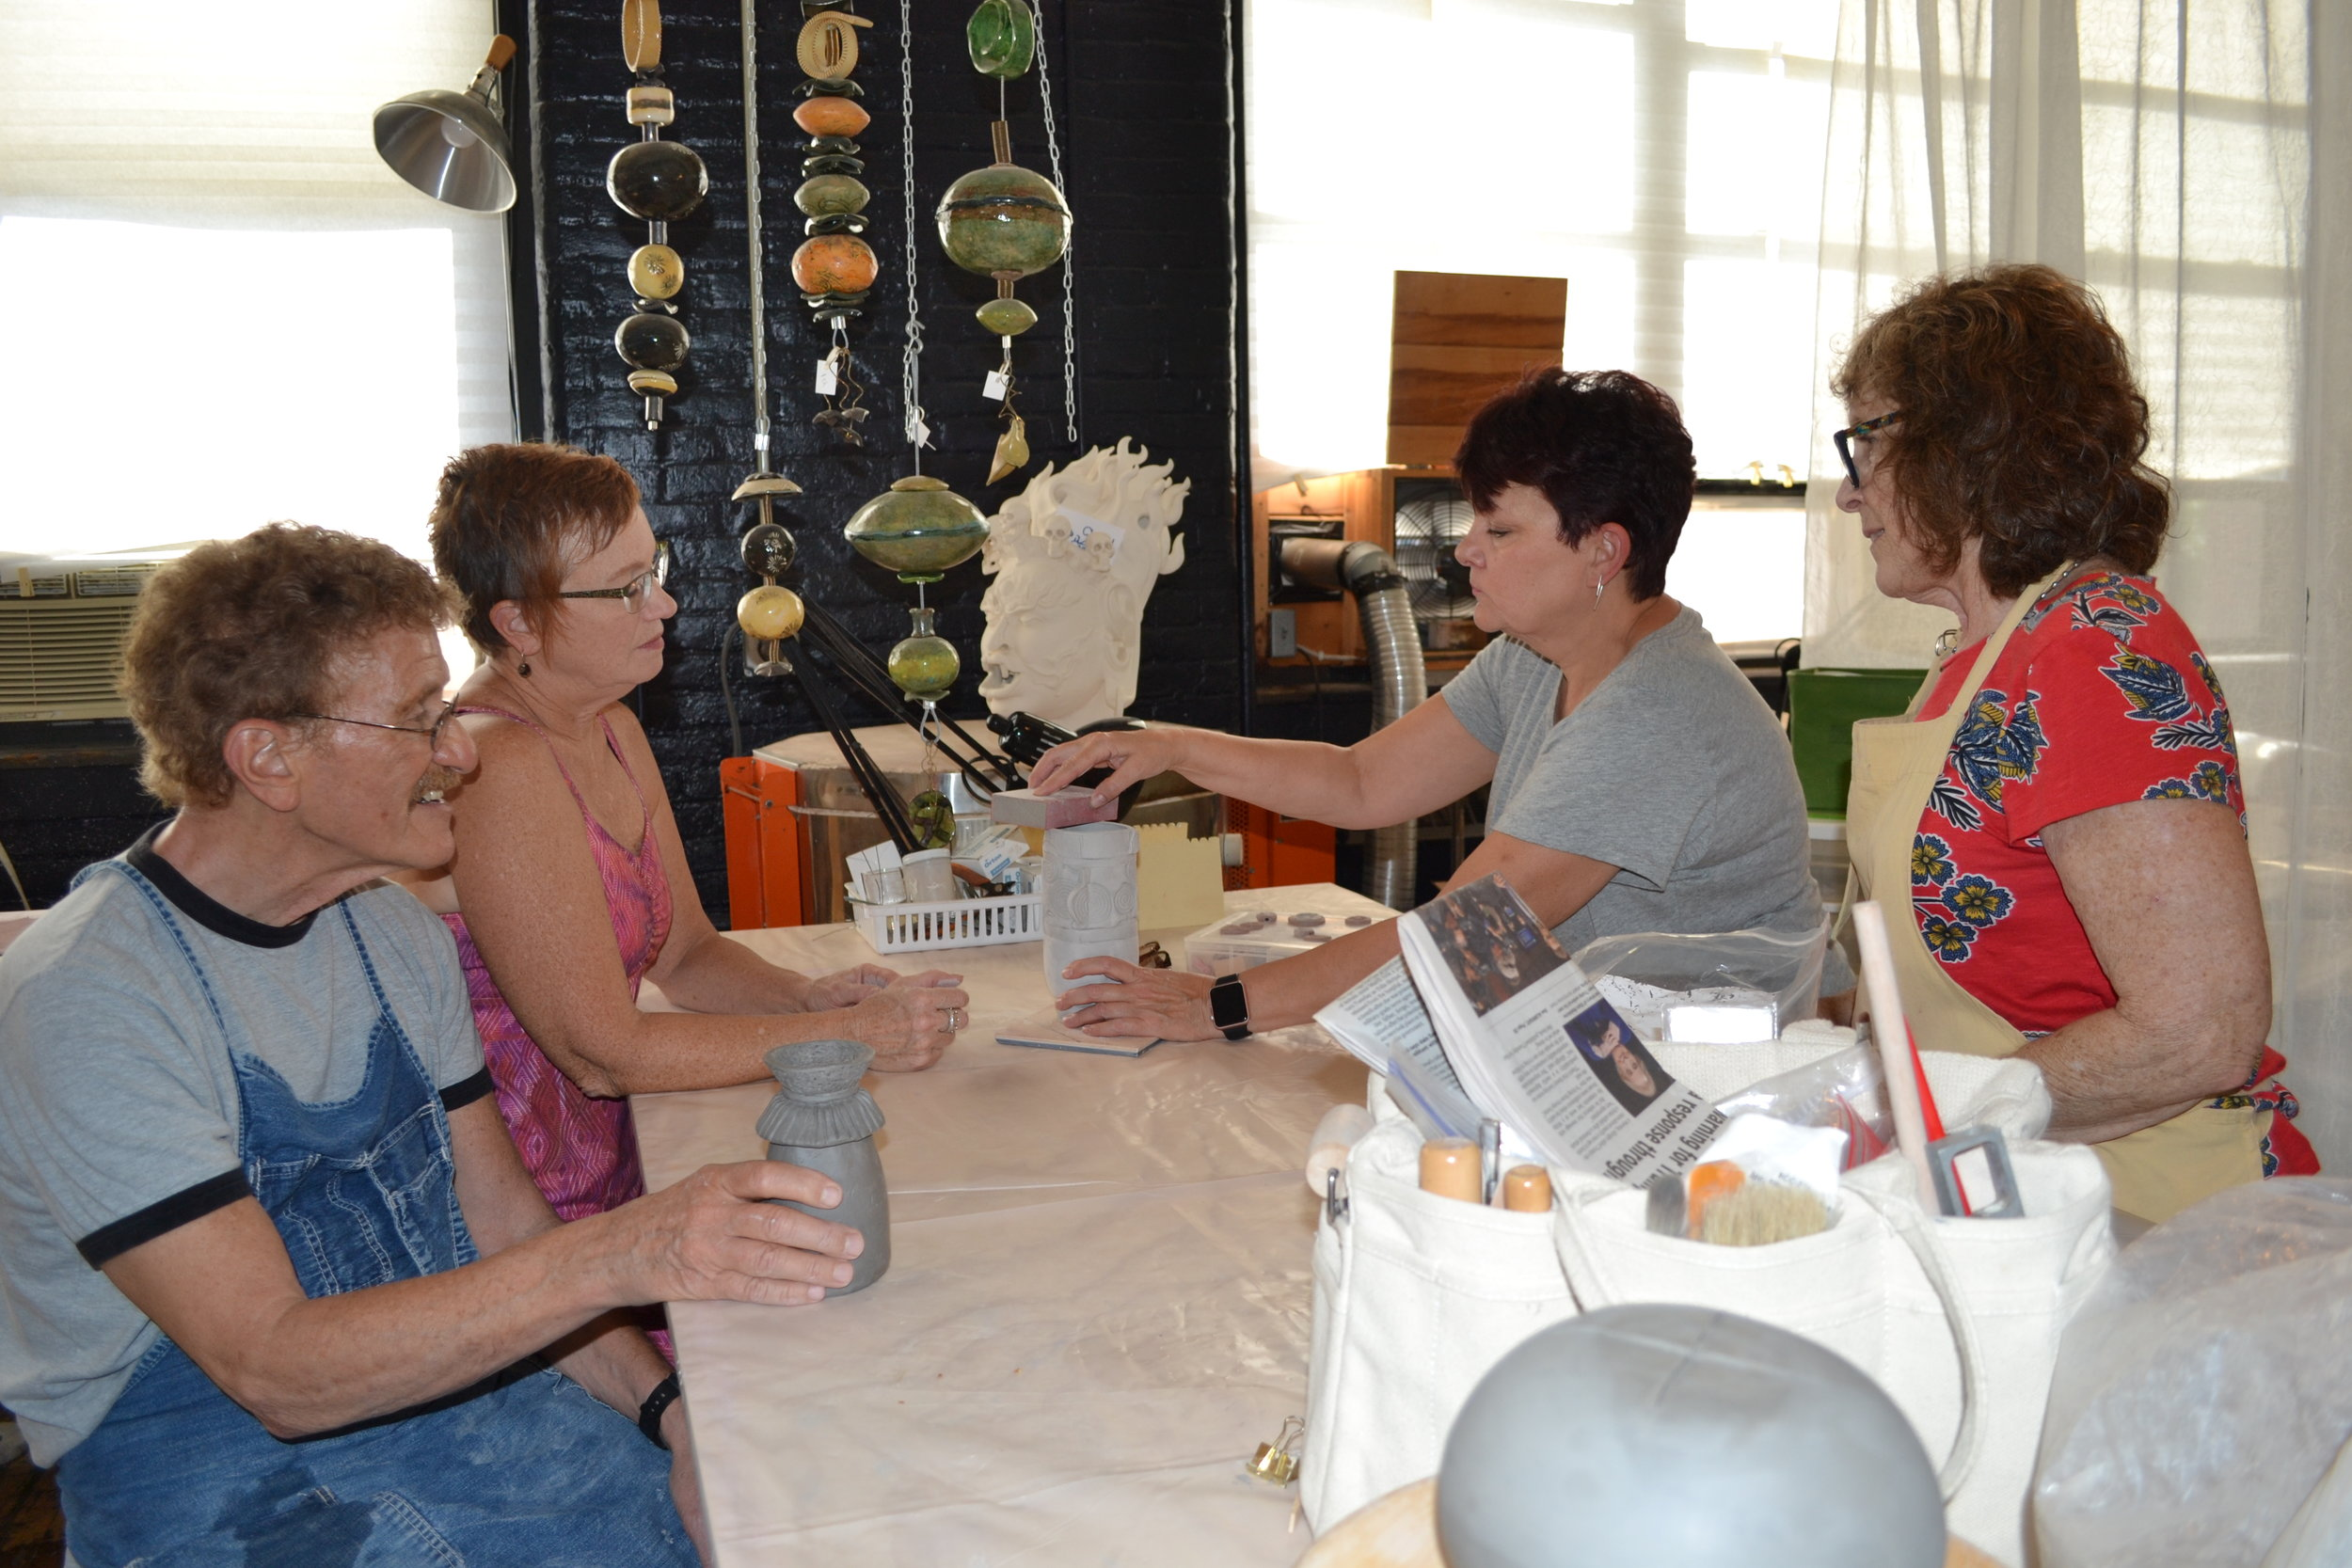 Collaboration helps everyone to learn new techniques about hand-crafted ceramics.